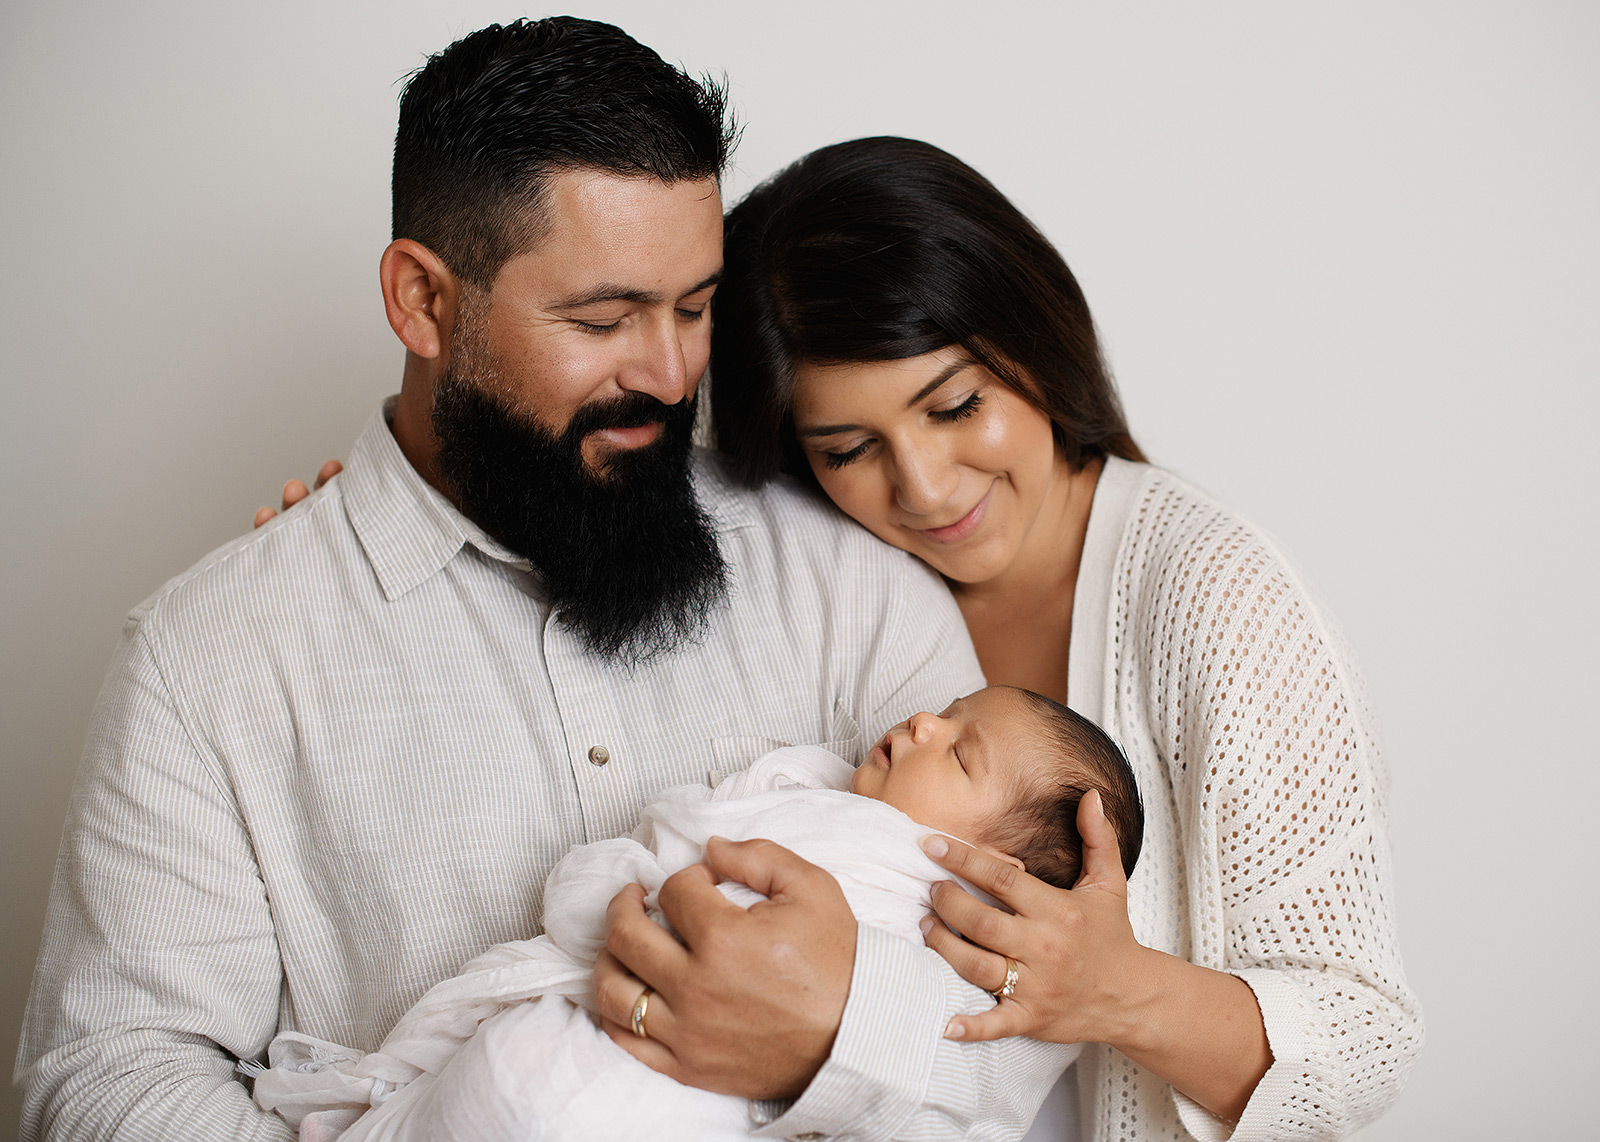 Mom and dad snuggle up to newborn baby wearing neutrals in studio